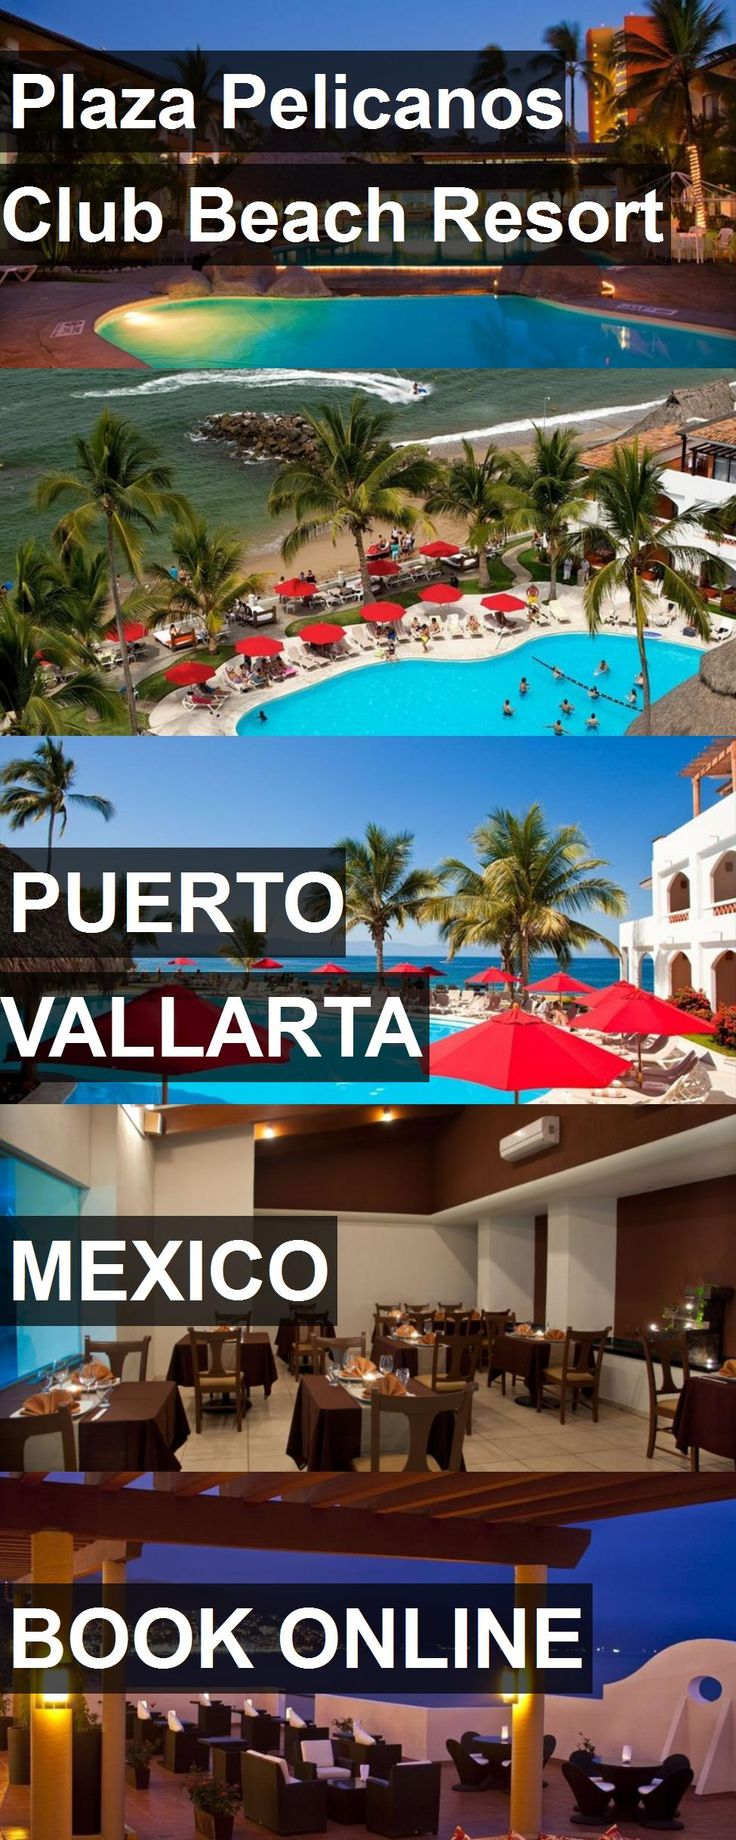 Hotel Plaza Pelicanos Club Beach Resort in Puerto Vallarta, Mexico. For more information, photos, reviews and best prices please follow the link. #Mexico #PuertoVallarta #travel #vacation #hotel